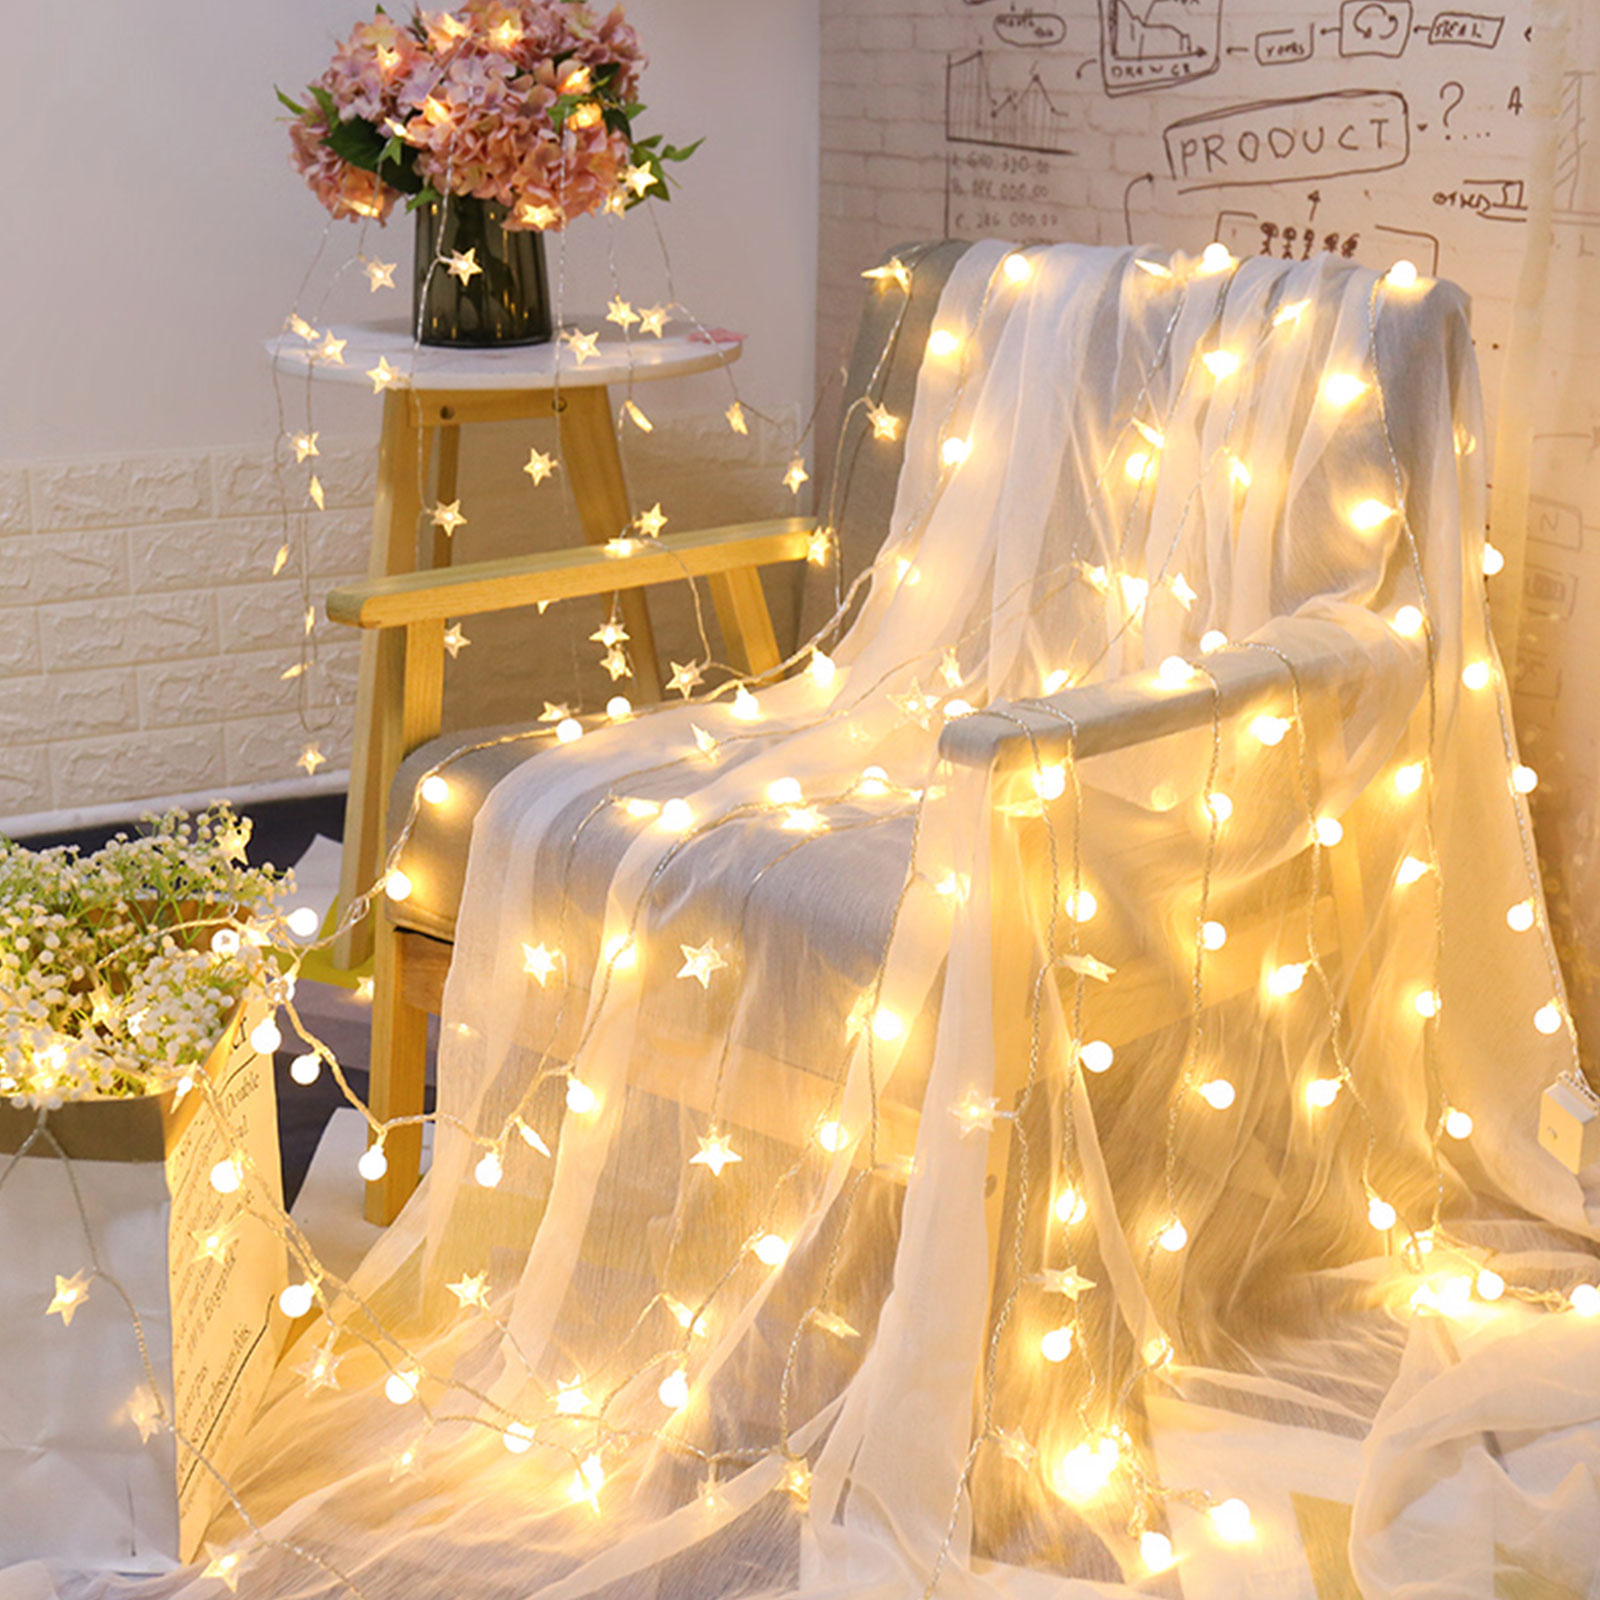 Battery operated warm white string lights